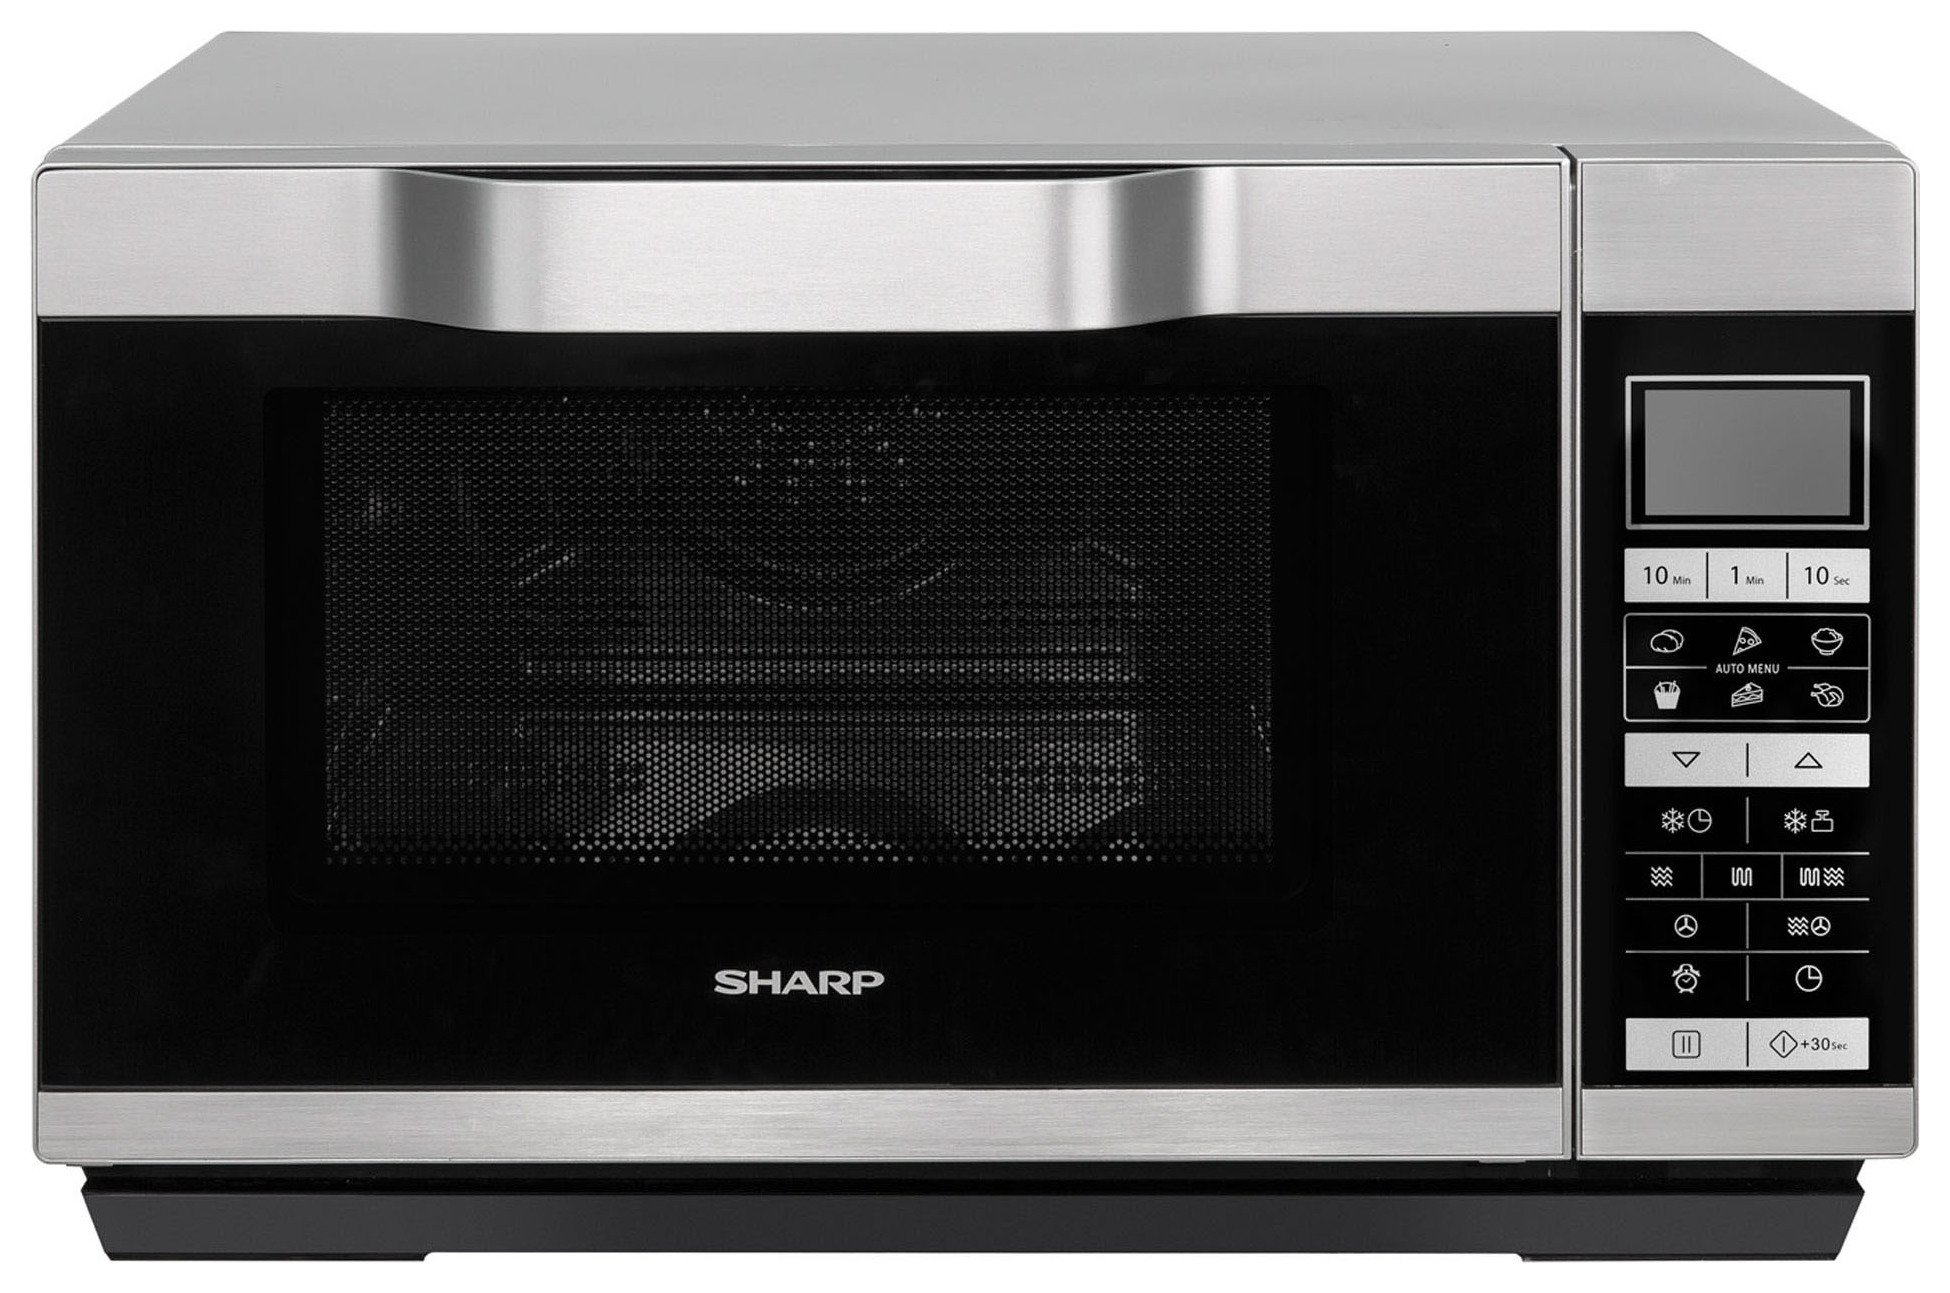 Sharp - Combination Microwave - R861SLM Combination Touch Microwave -Silver